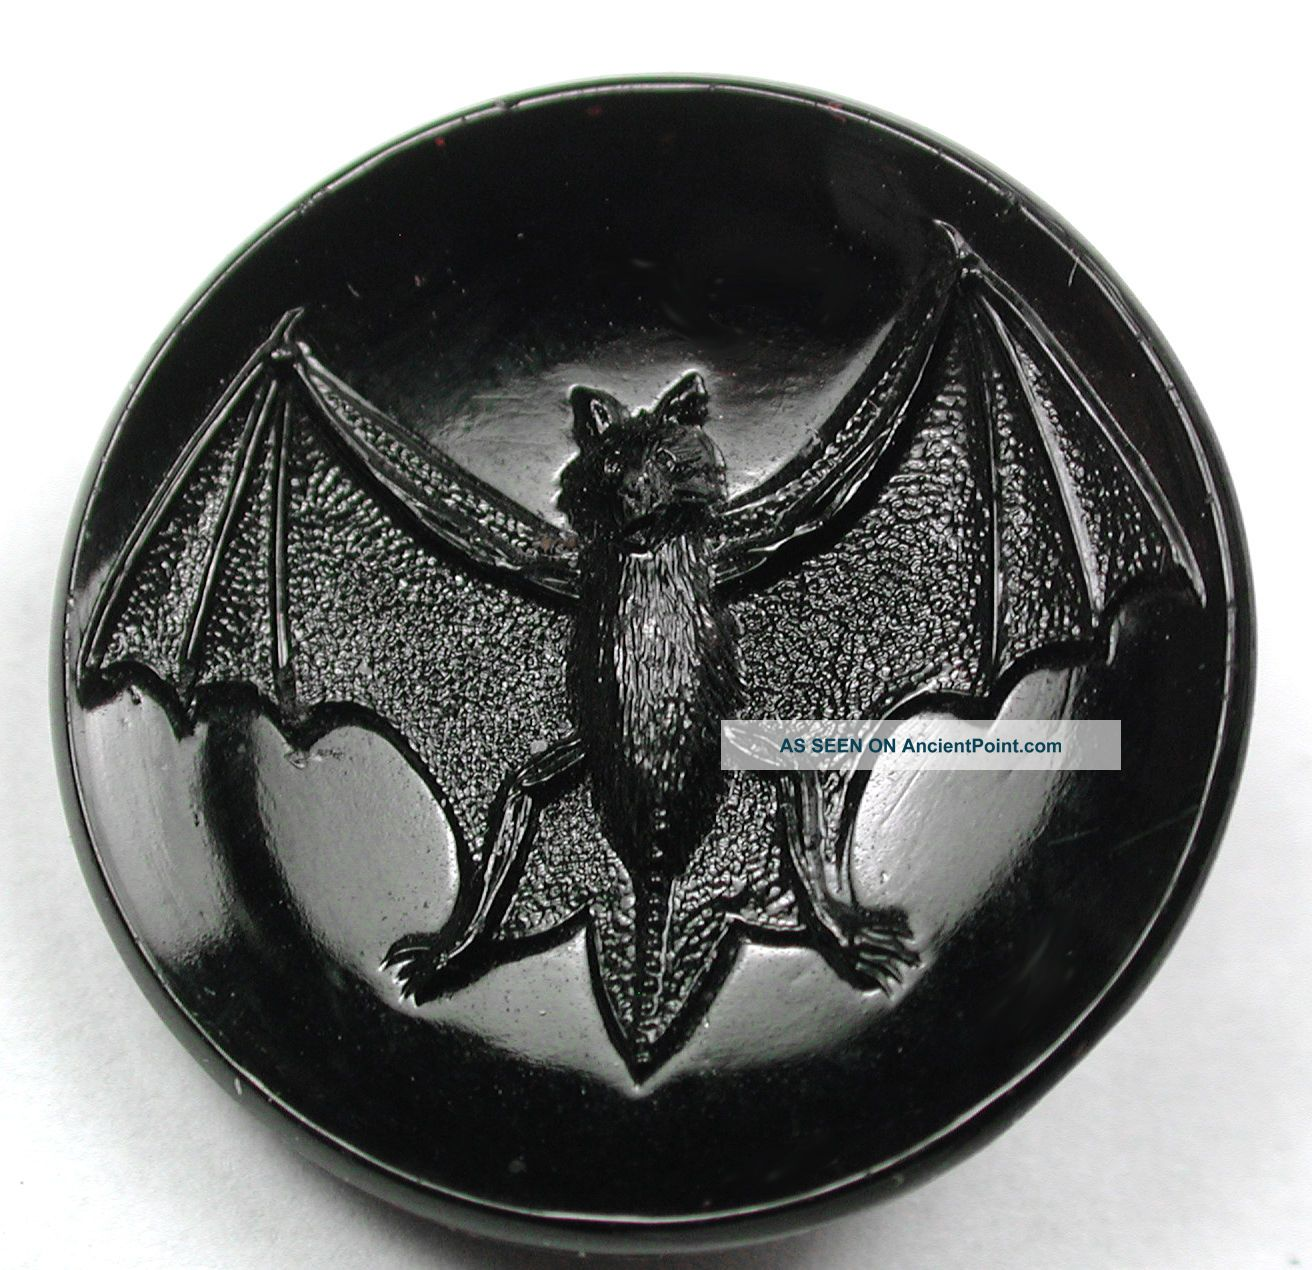 Antique Black Glass Button Bat W/ Wings Spread Wide - 7/8